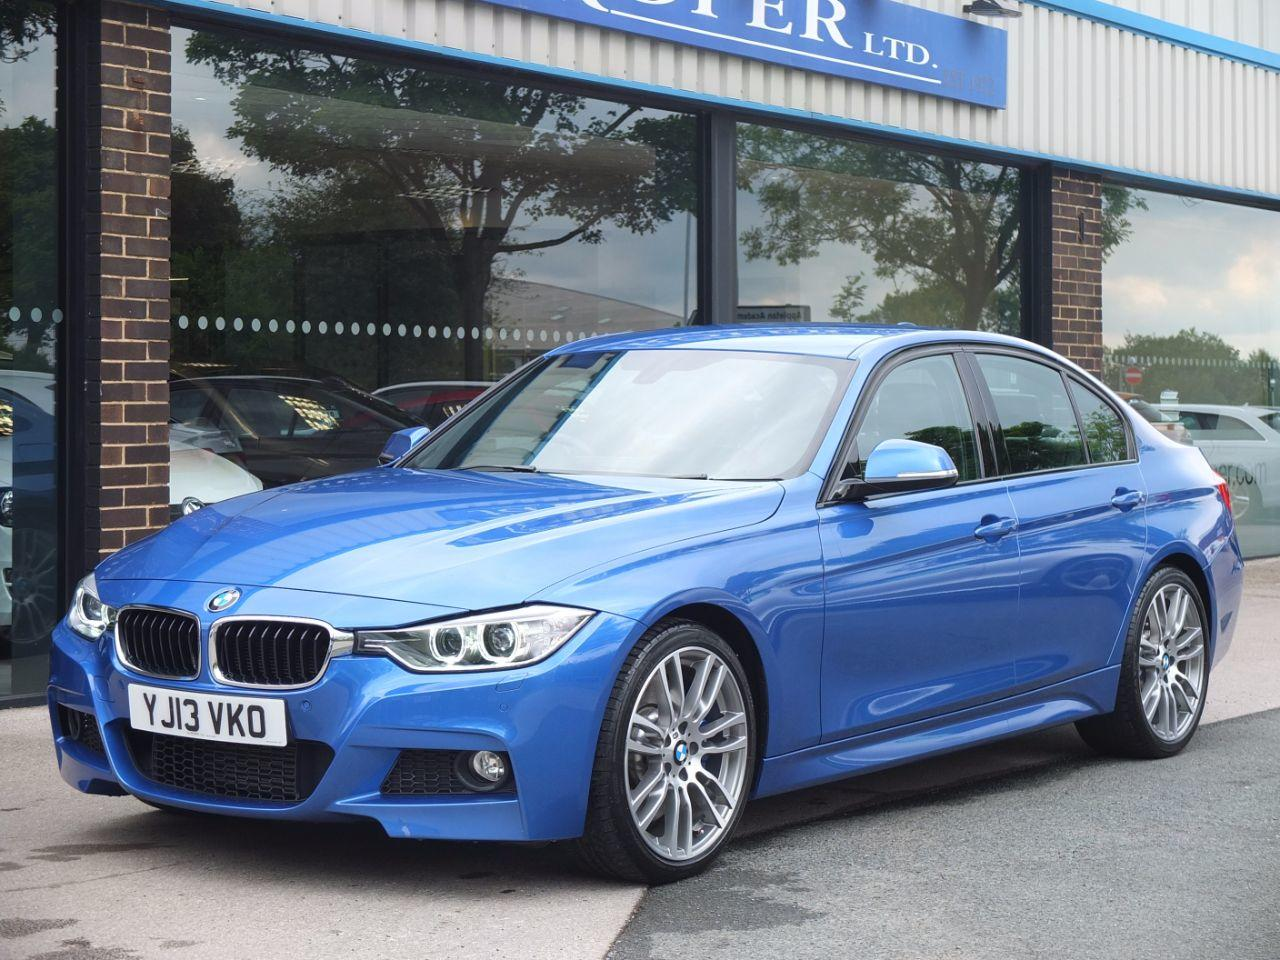 BMW 3 Series 3.0 330d Blue Performance M Sport Auto, Media Pack +++ Saloon Diesel Estoril Blue MetallicBMW 3 Series 3.0 330d Blue Performance M Sport Auto, Media Pack +++ Saloon Diesel Estoril Blue Metallic at fa Roper Ltd Bradford